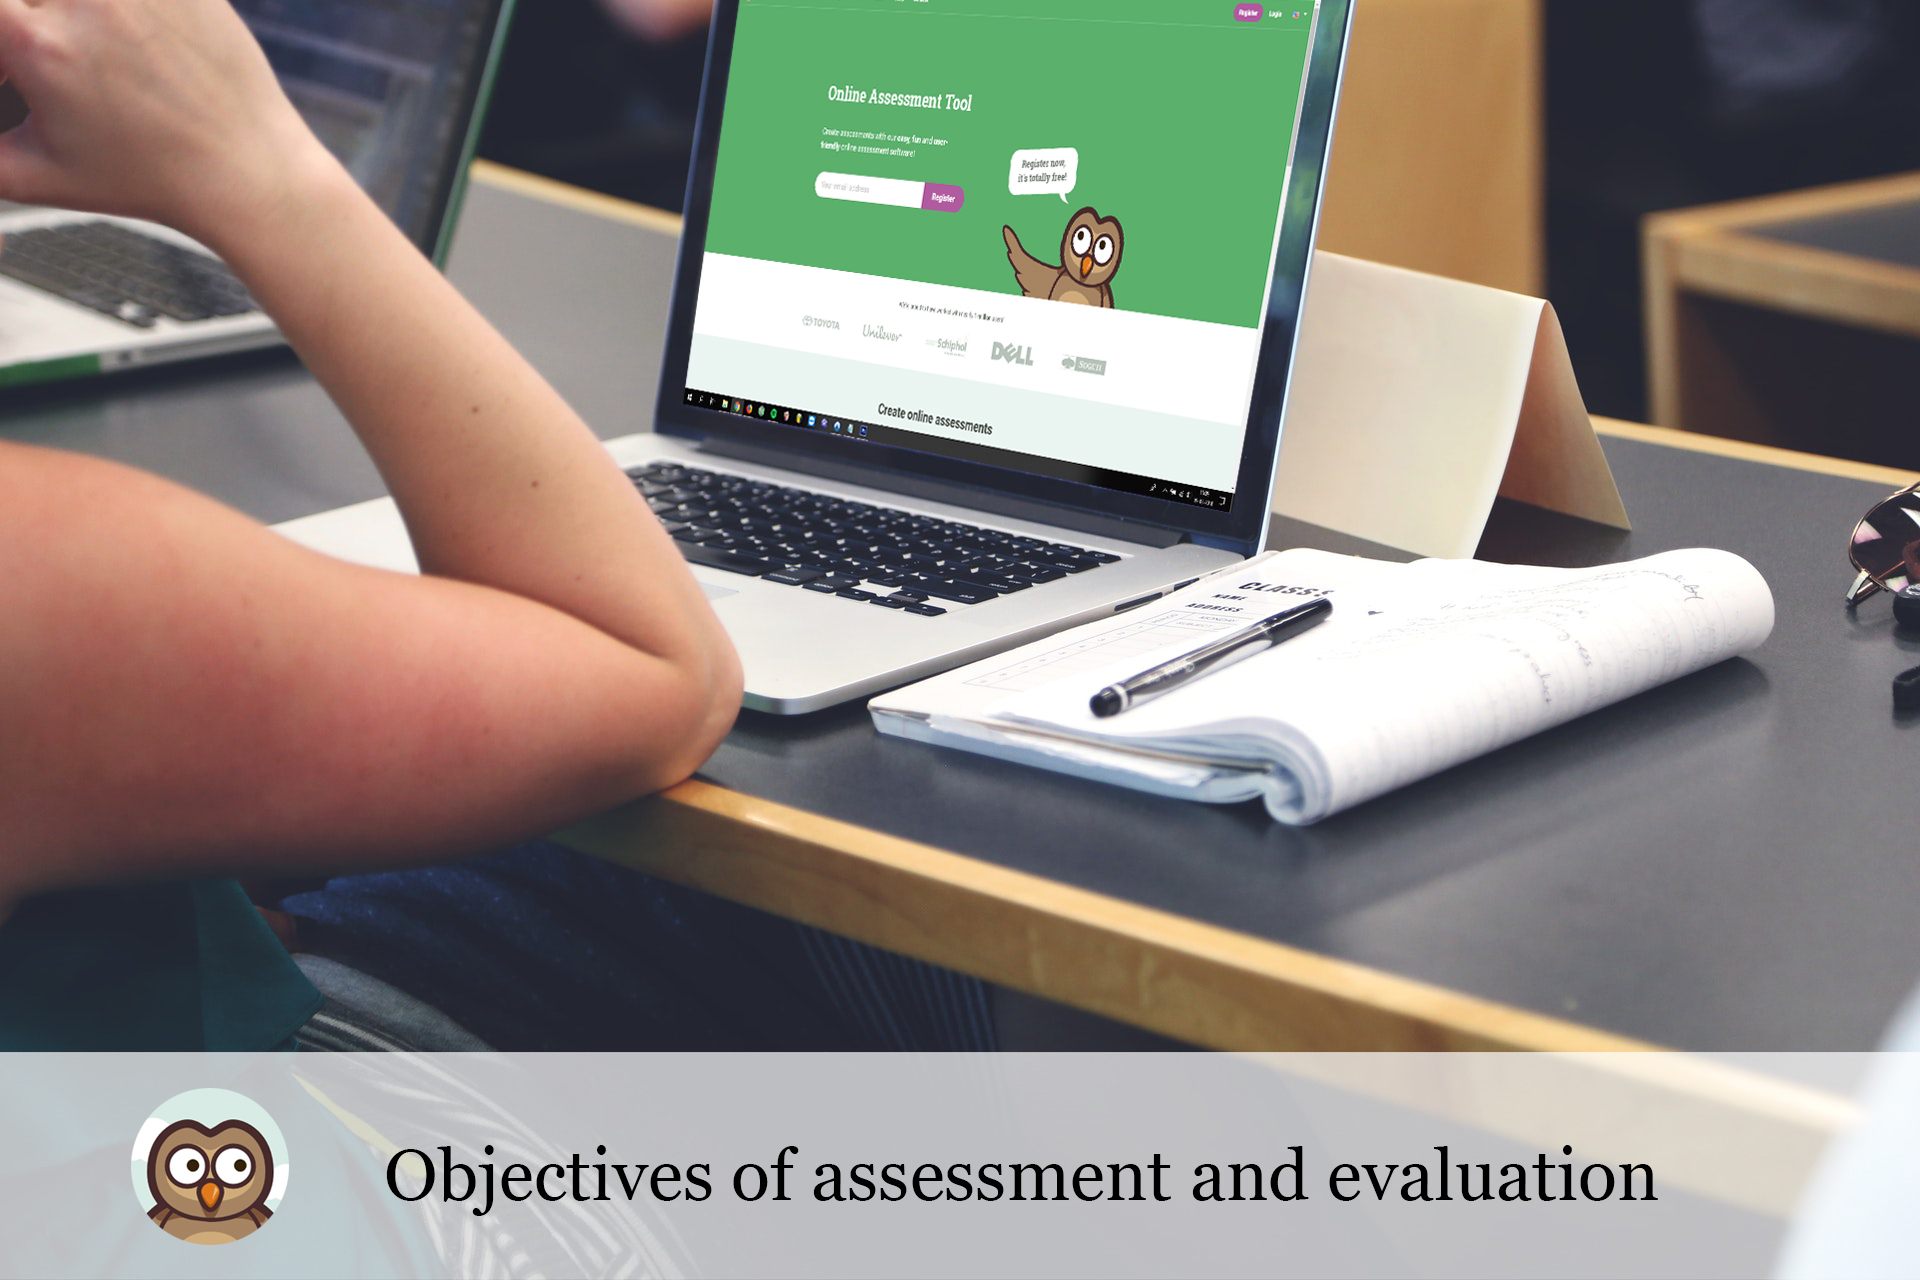 Objectives of assessment and evaluation